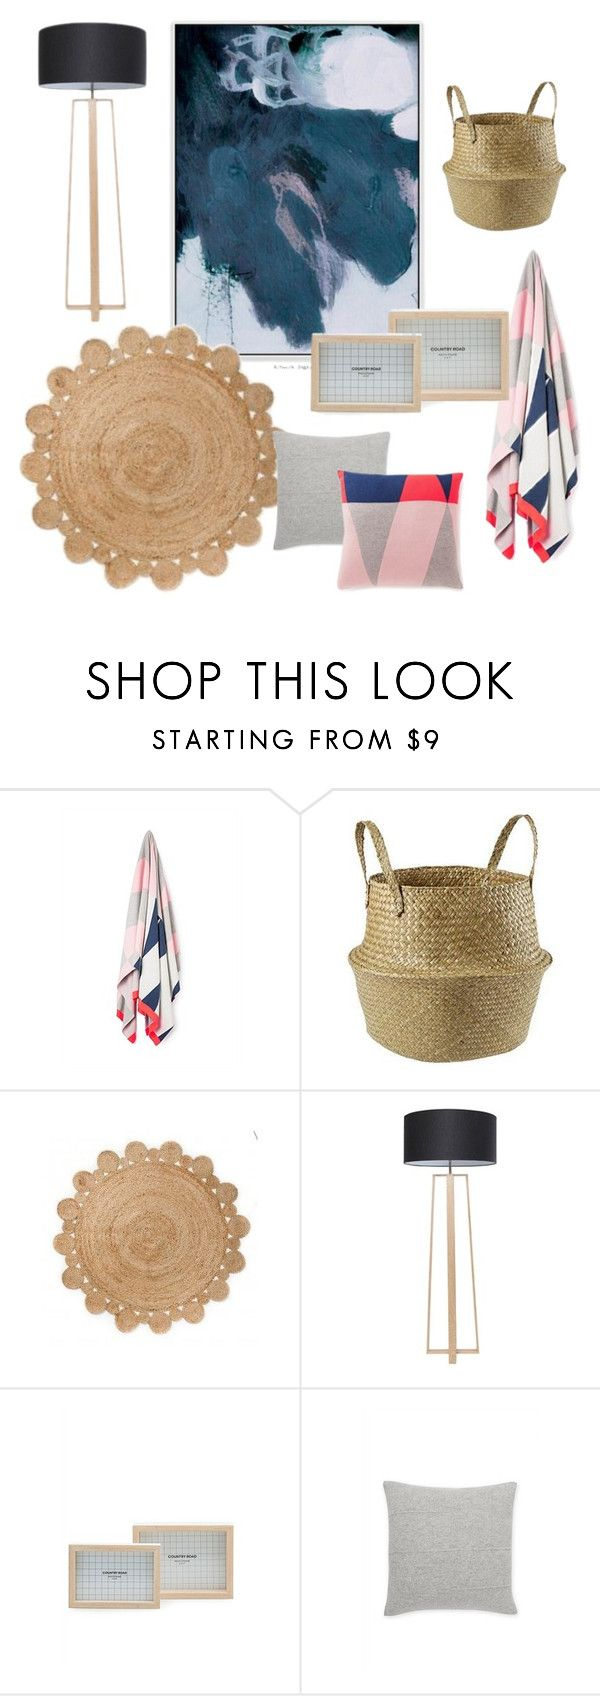 """""""// UNITED ARTWORKS"""" by houseamour on Polyvore featuring interior, interiors, interior design, home, home decor and interior decorating"""